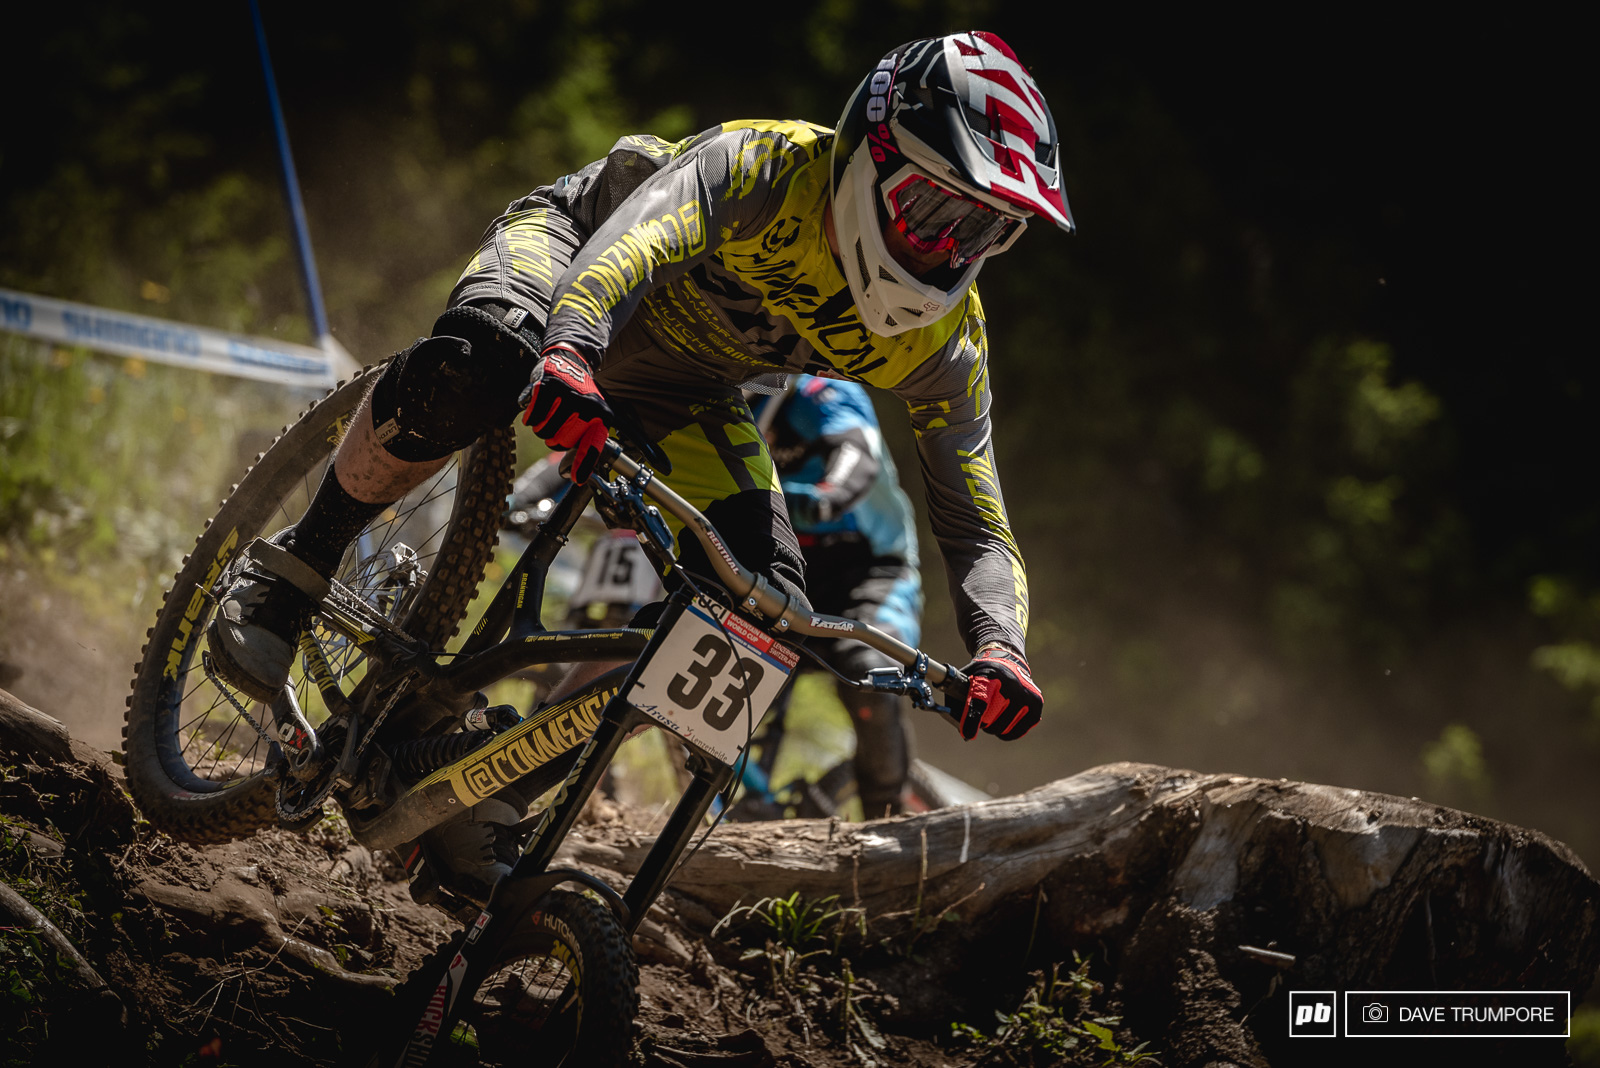 George Brannigan is back to 100 after taking a few weeks to recover from the massive crash he took in Fort William.